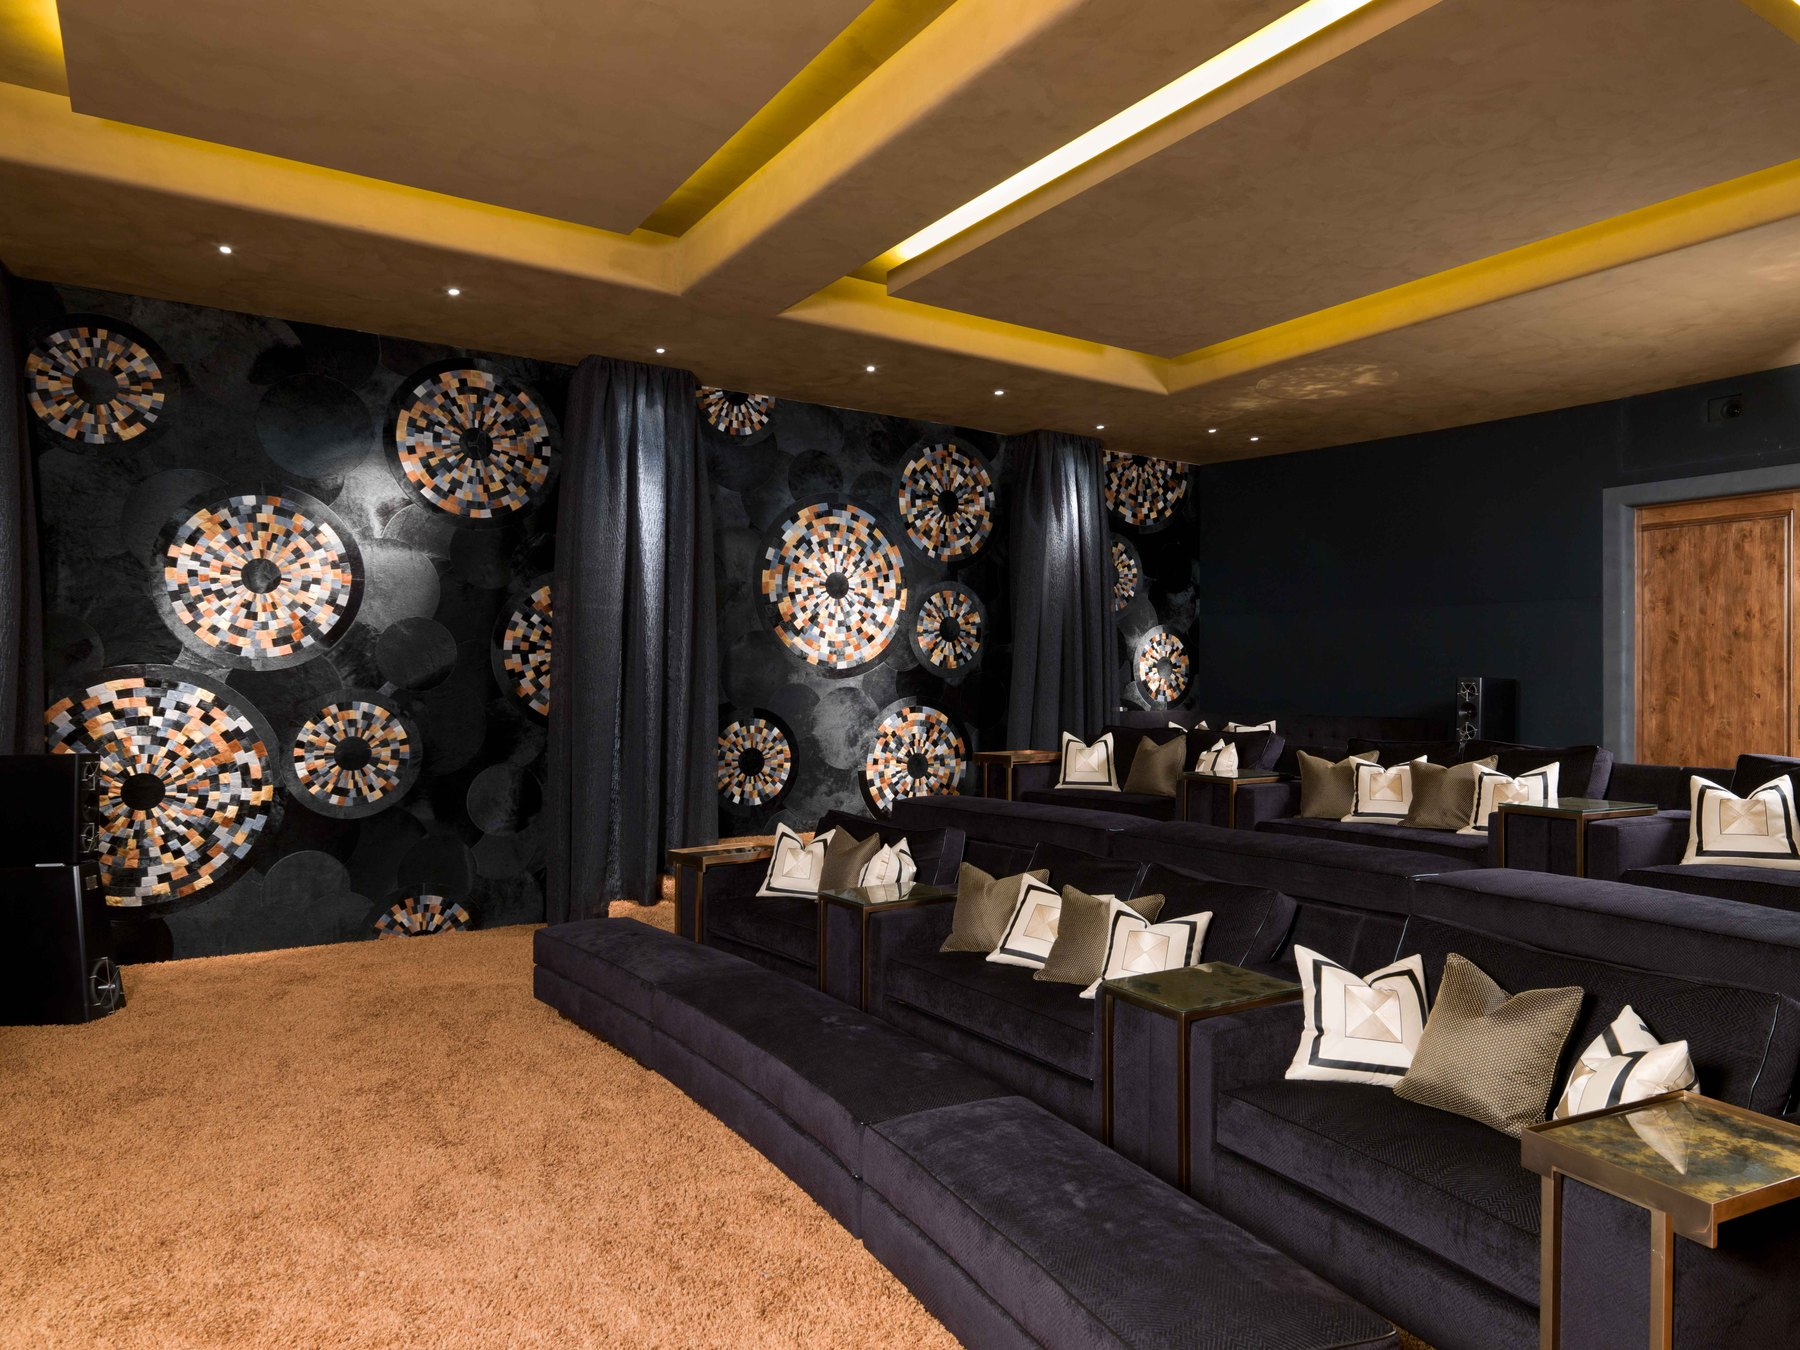 Interior Design Installation By G Force Designs